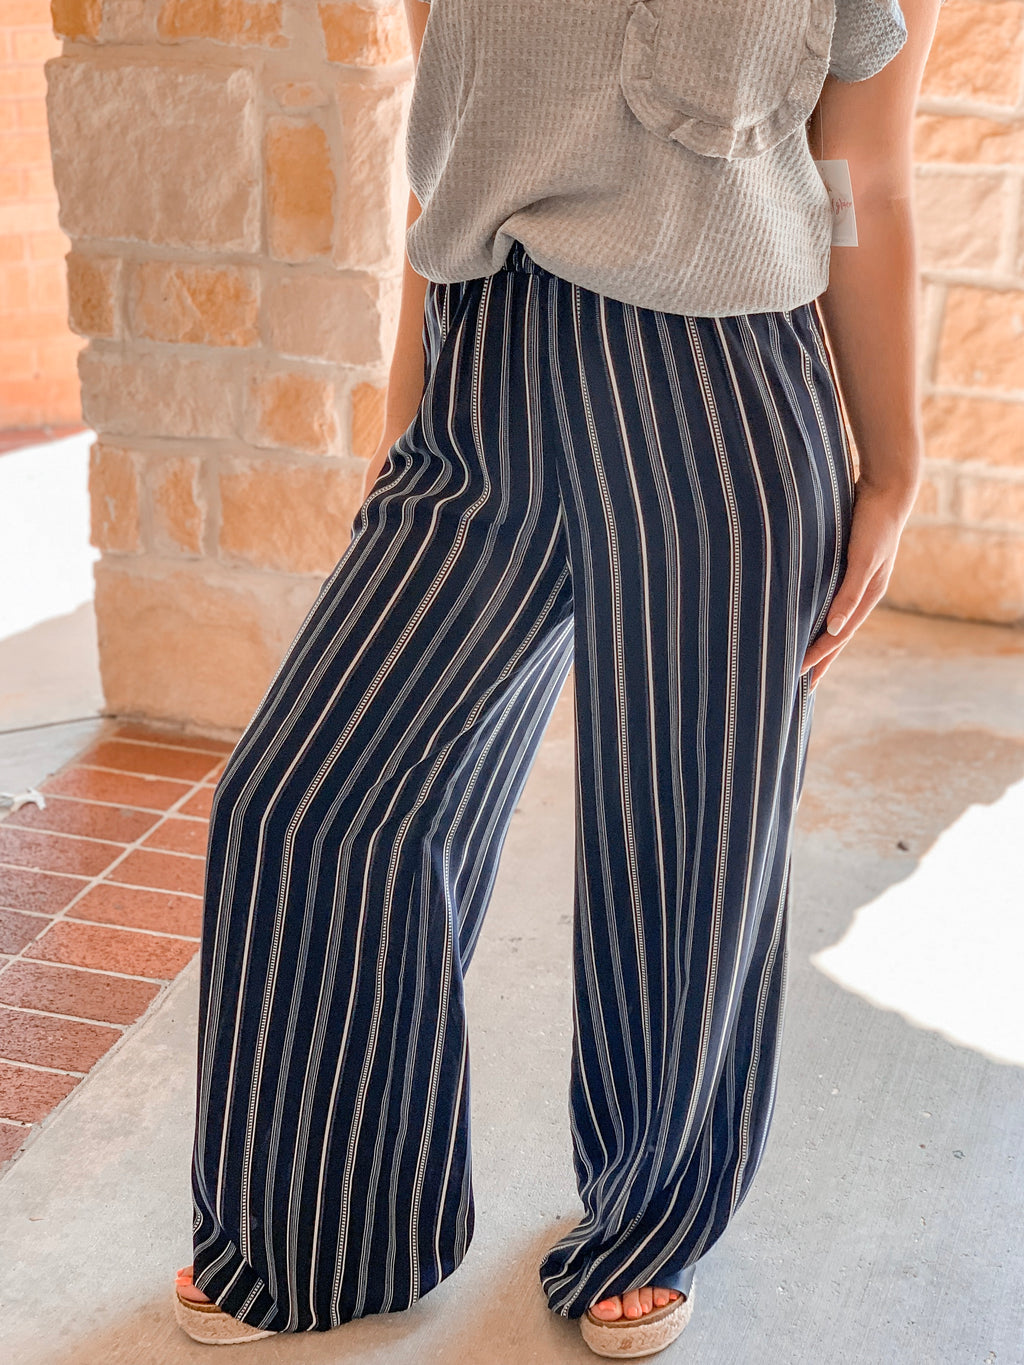 Striped High Rise Pants - Navy